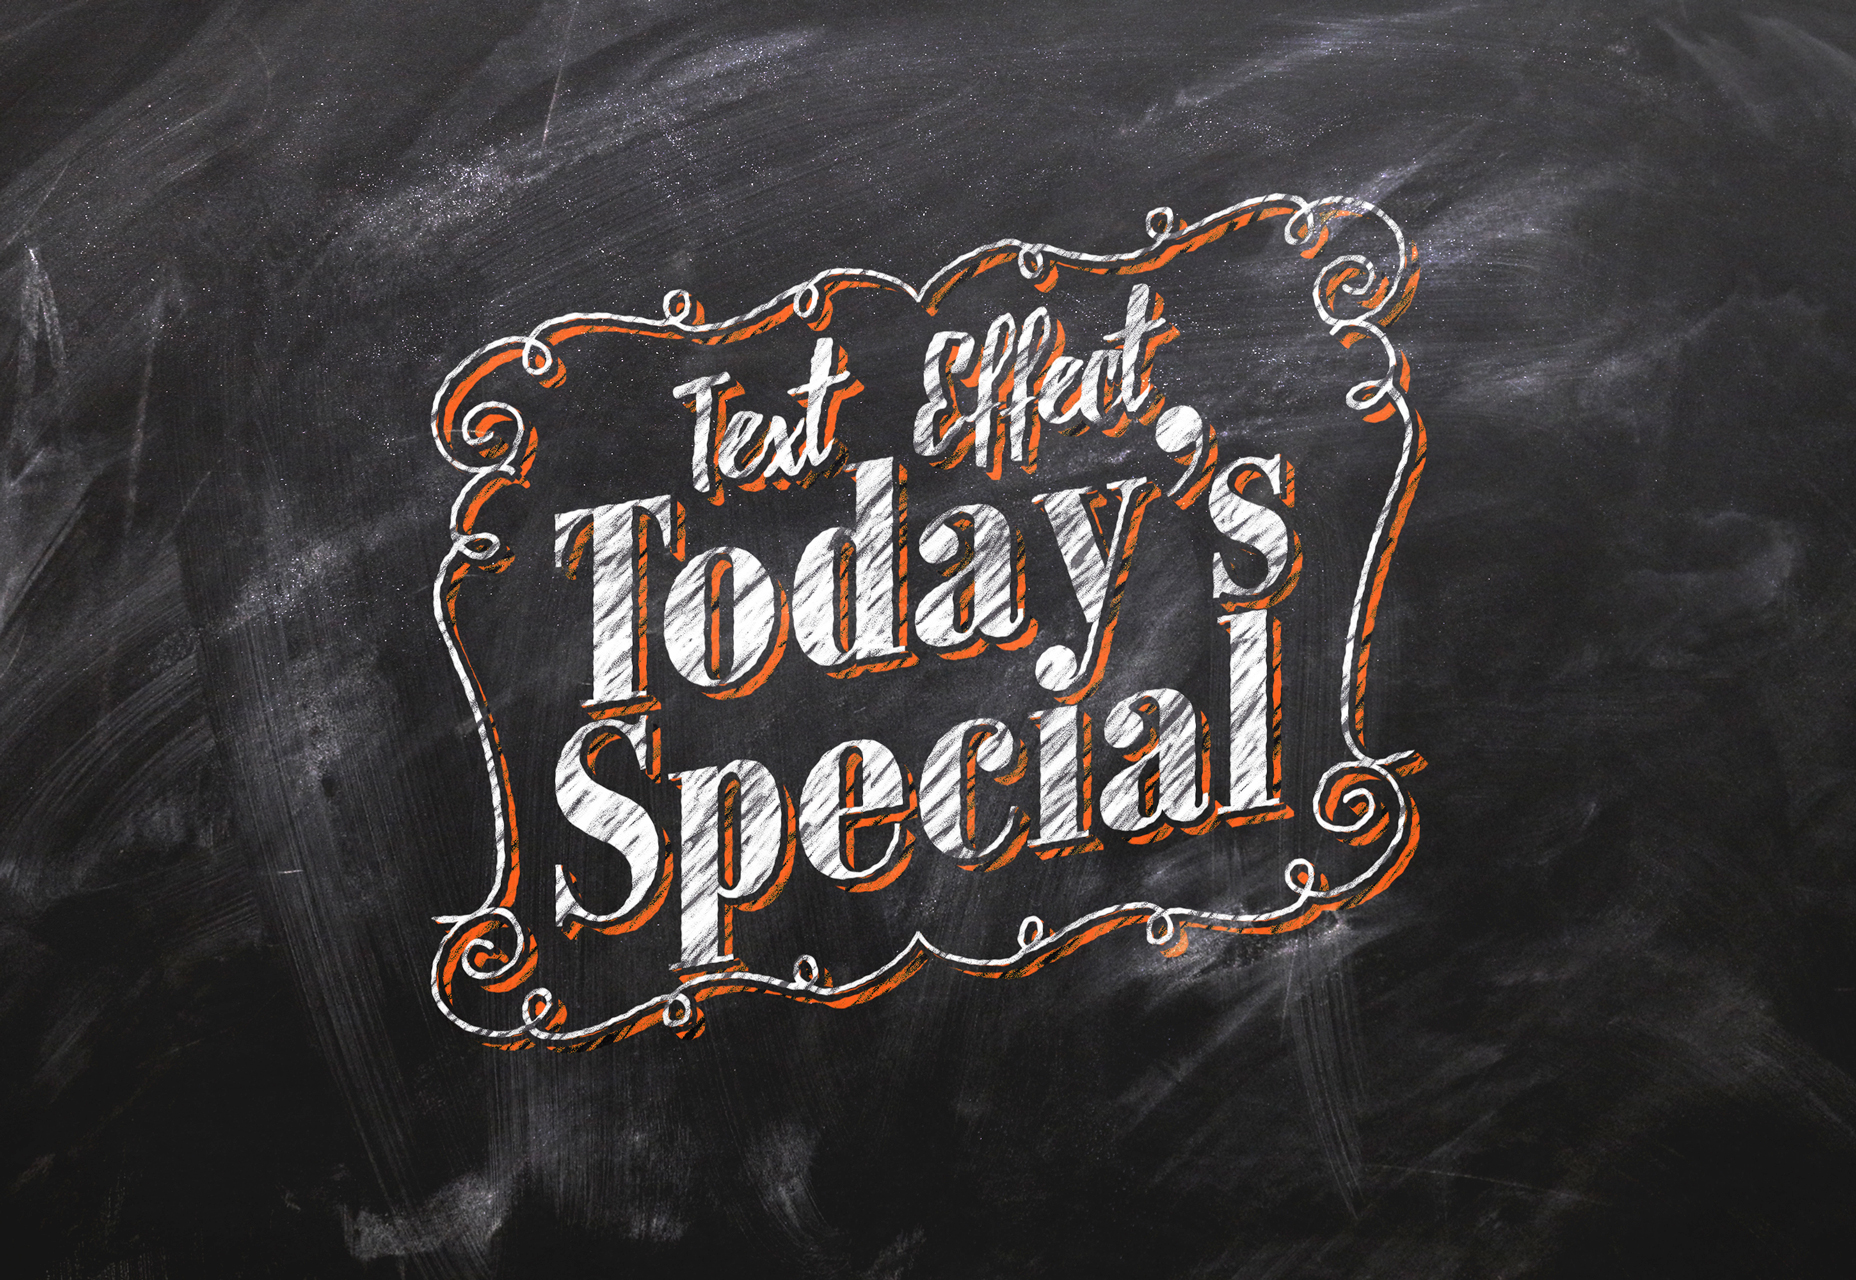 chalkboard-photoshop-text-effect